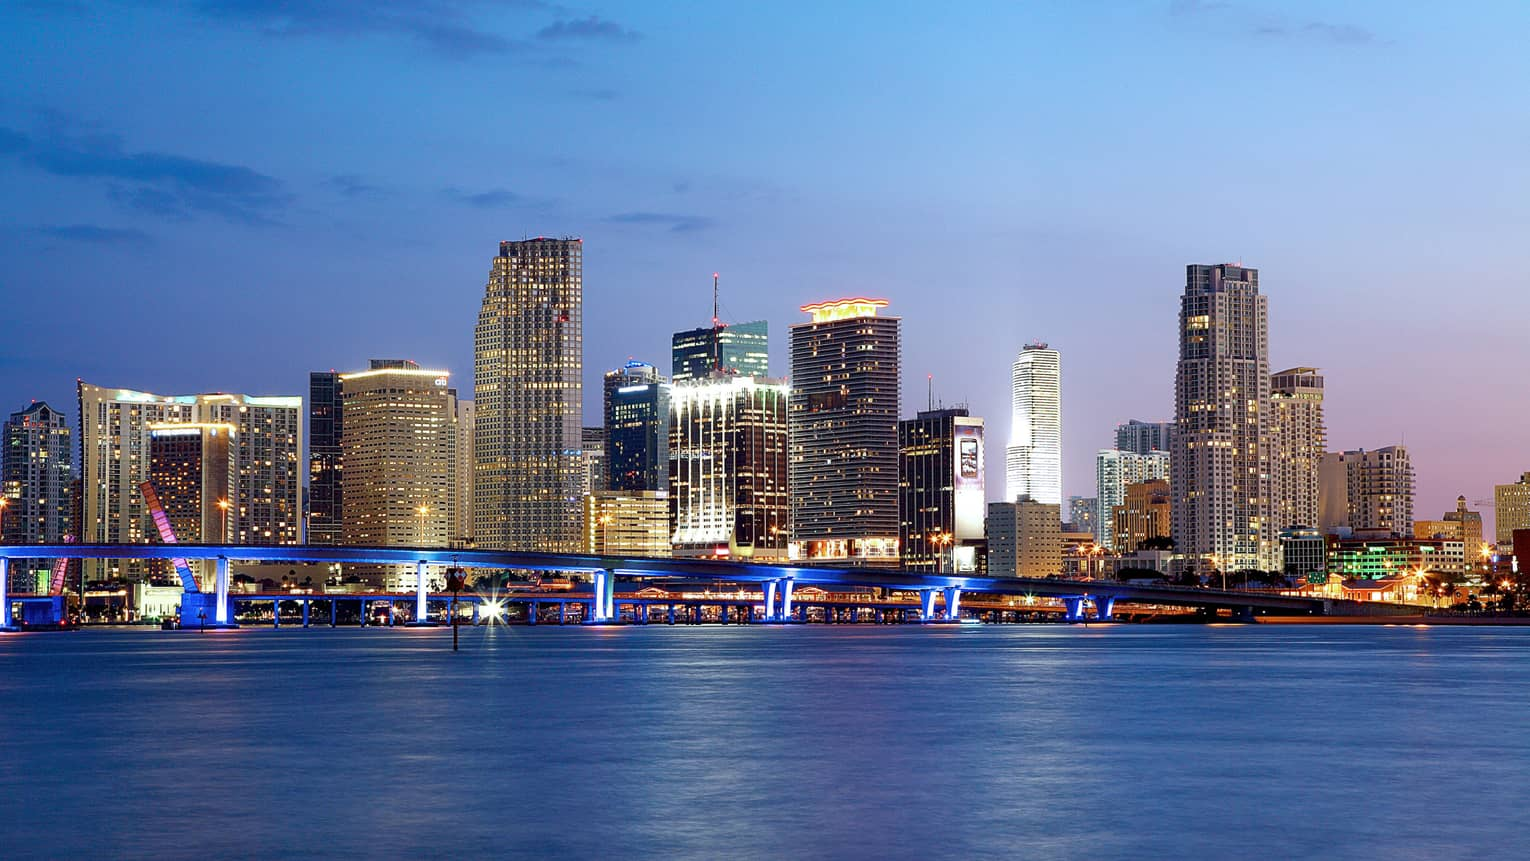 Miami highrise buildings with lights along water at night